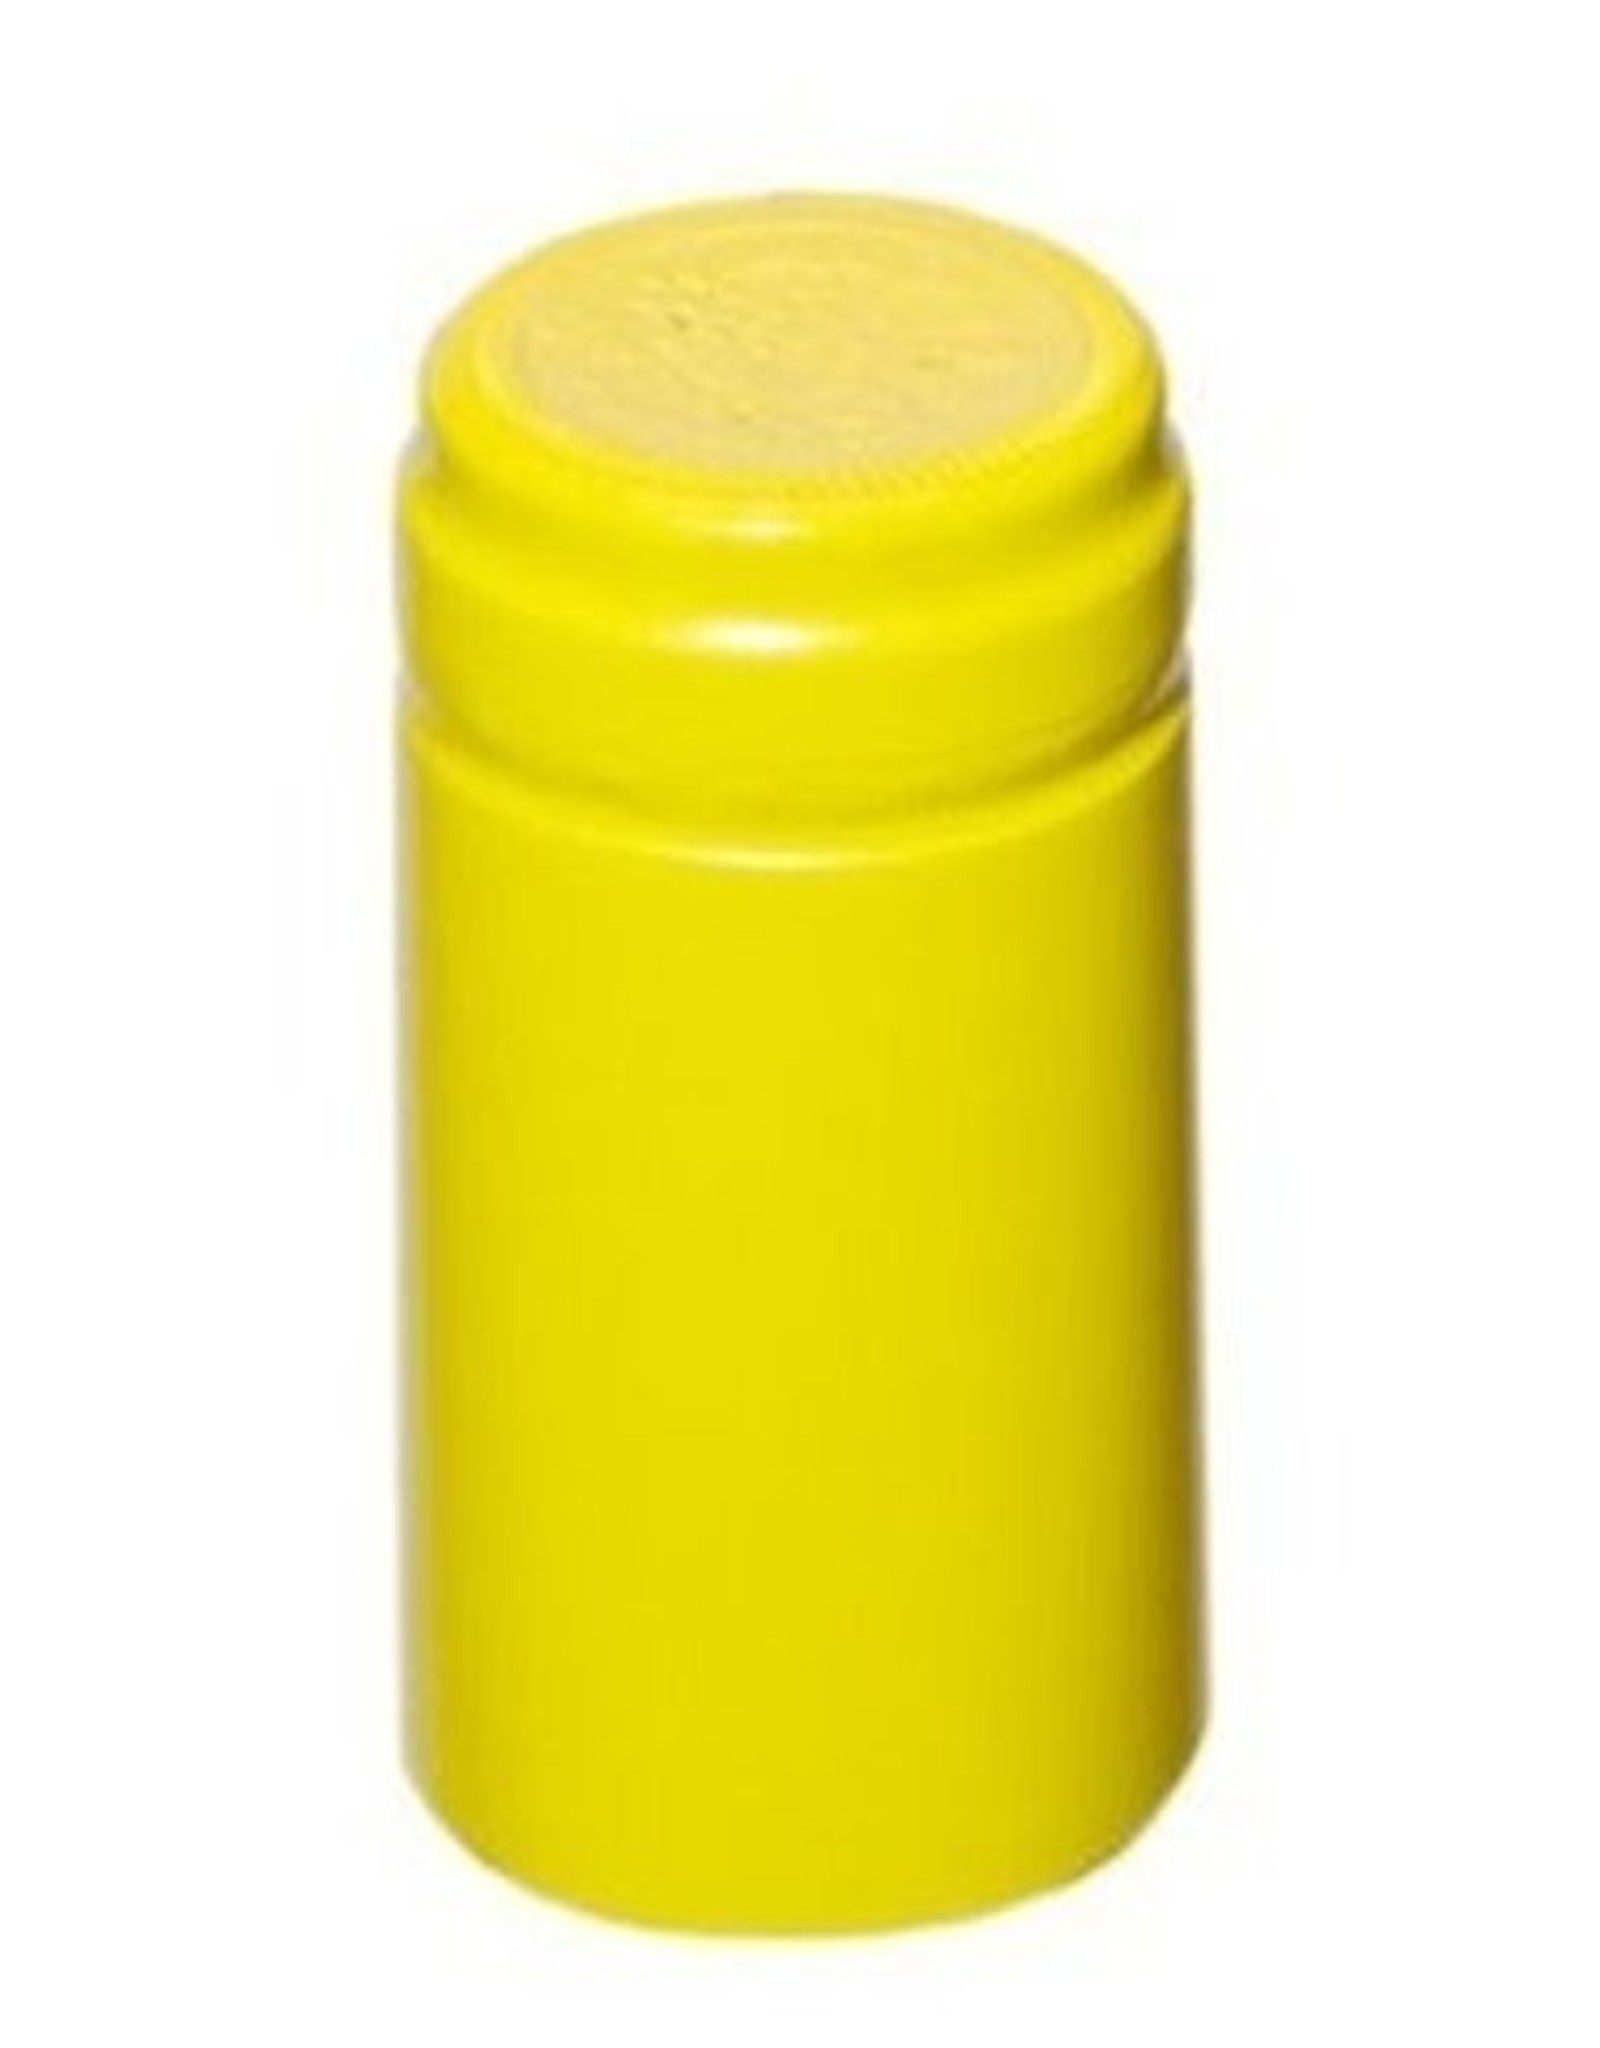 YELLOW MUSTARD PVC SHRINK CAPSULES 30 COUNT